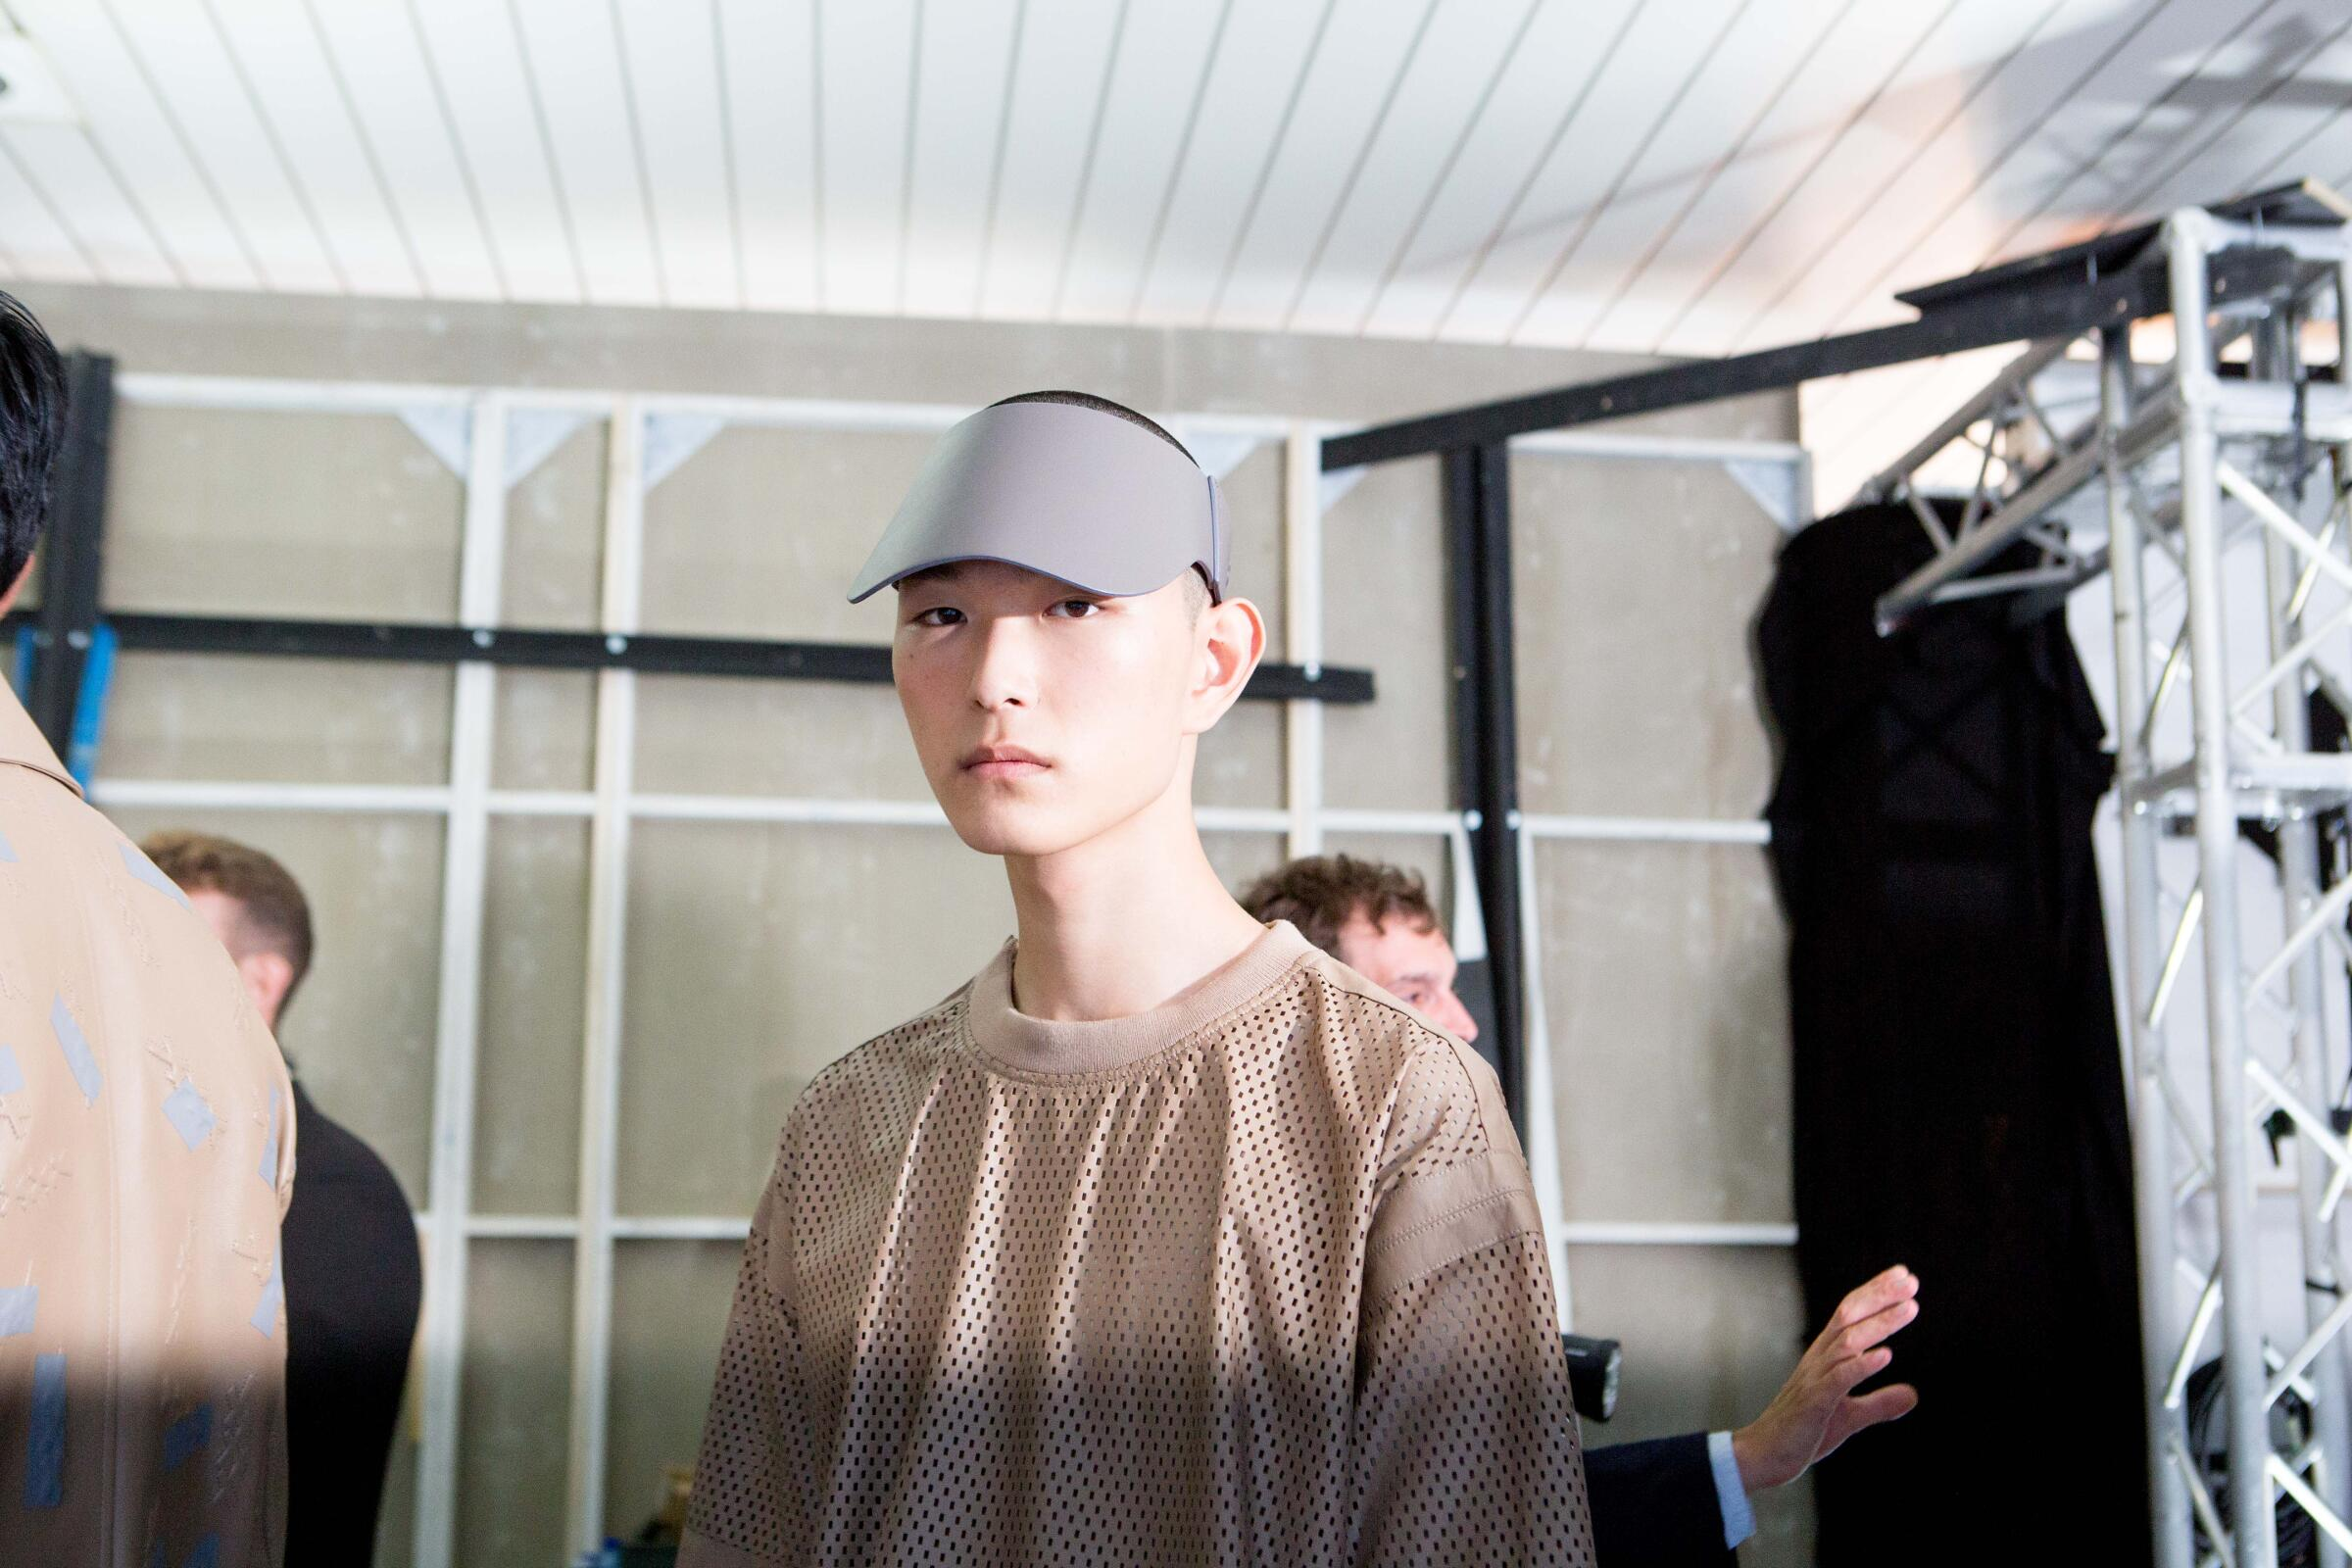 Backstage Ermenegildo Zegna Couture Model 2019